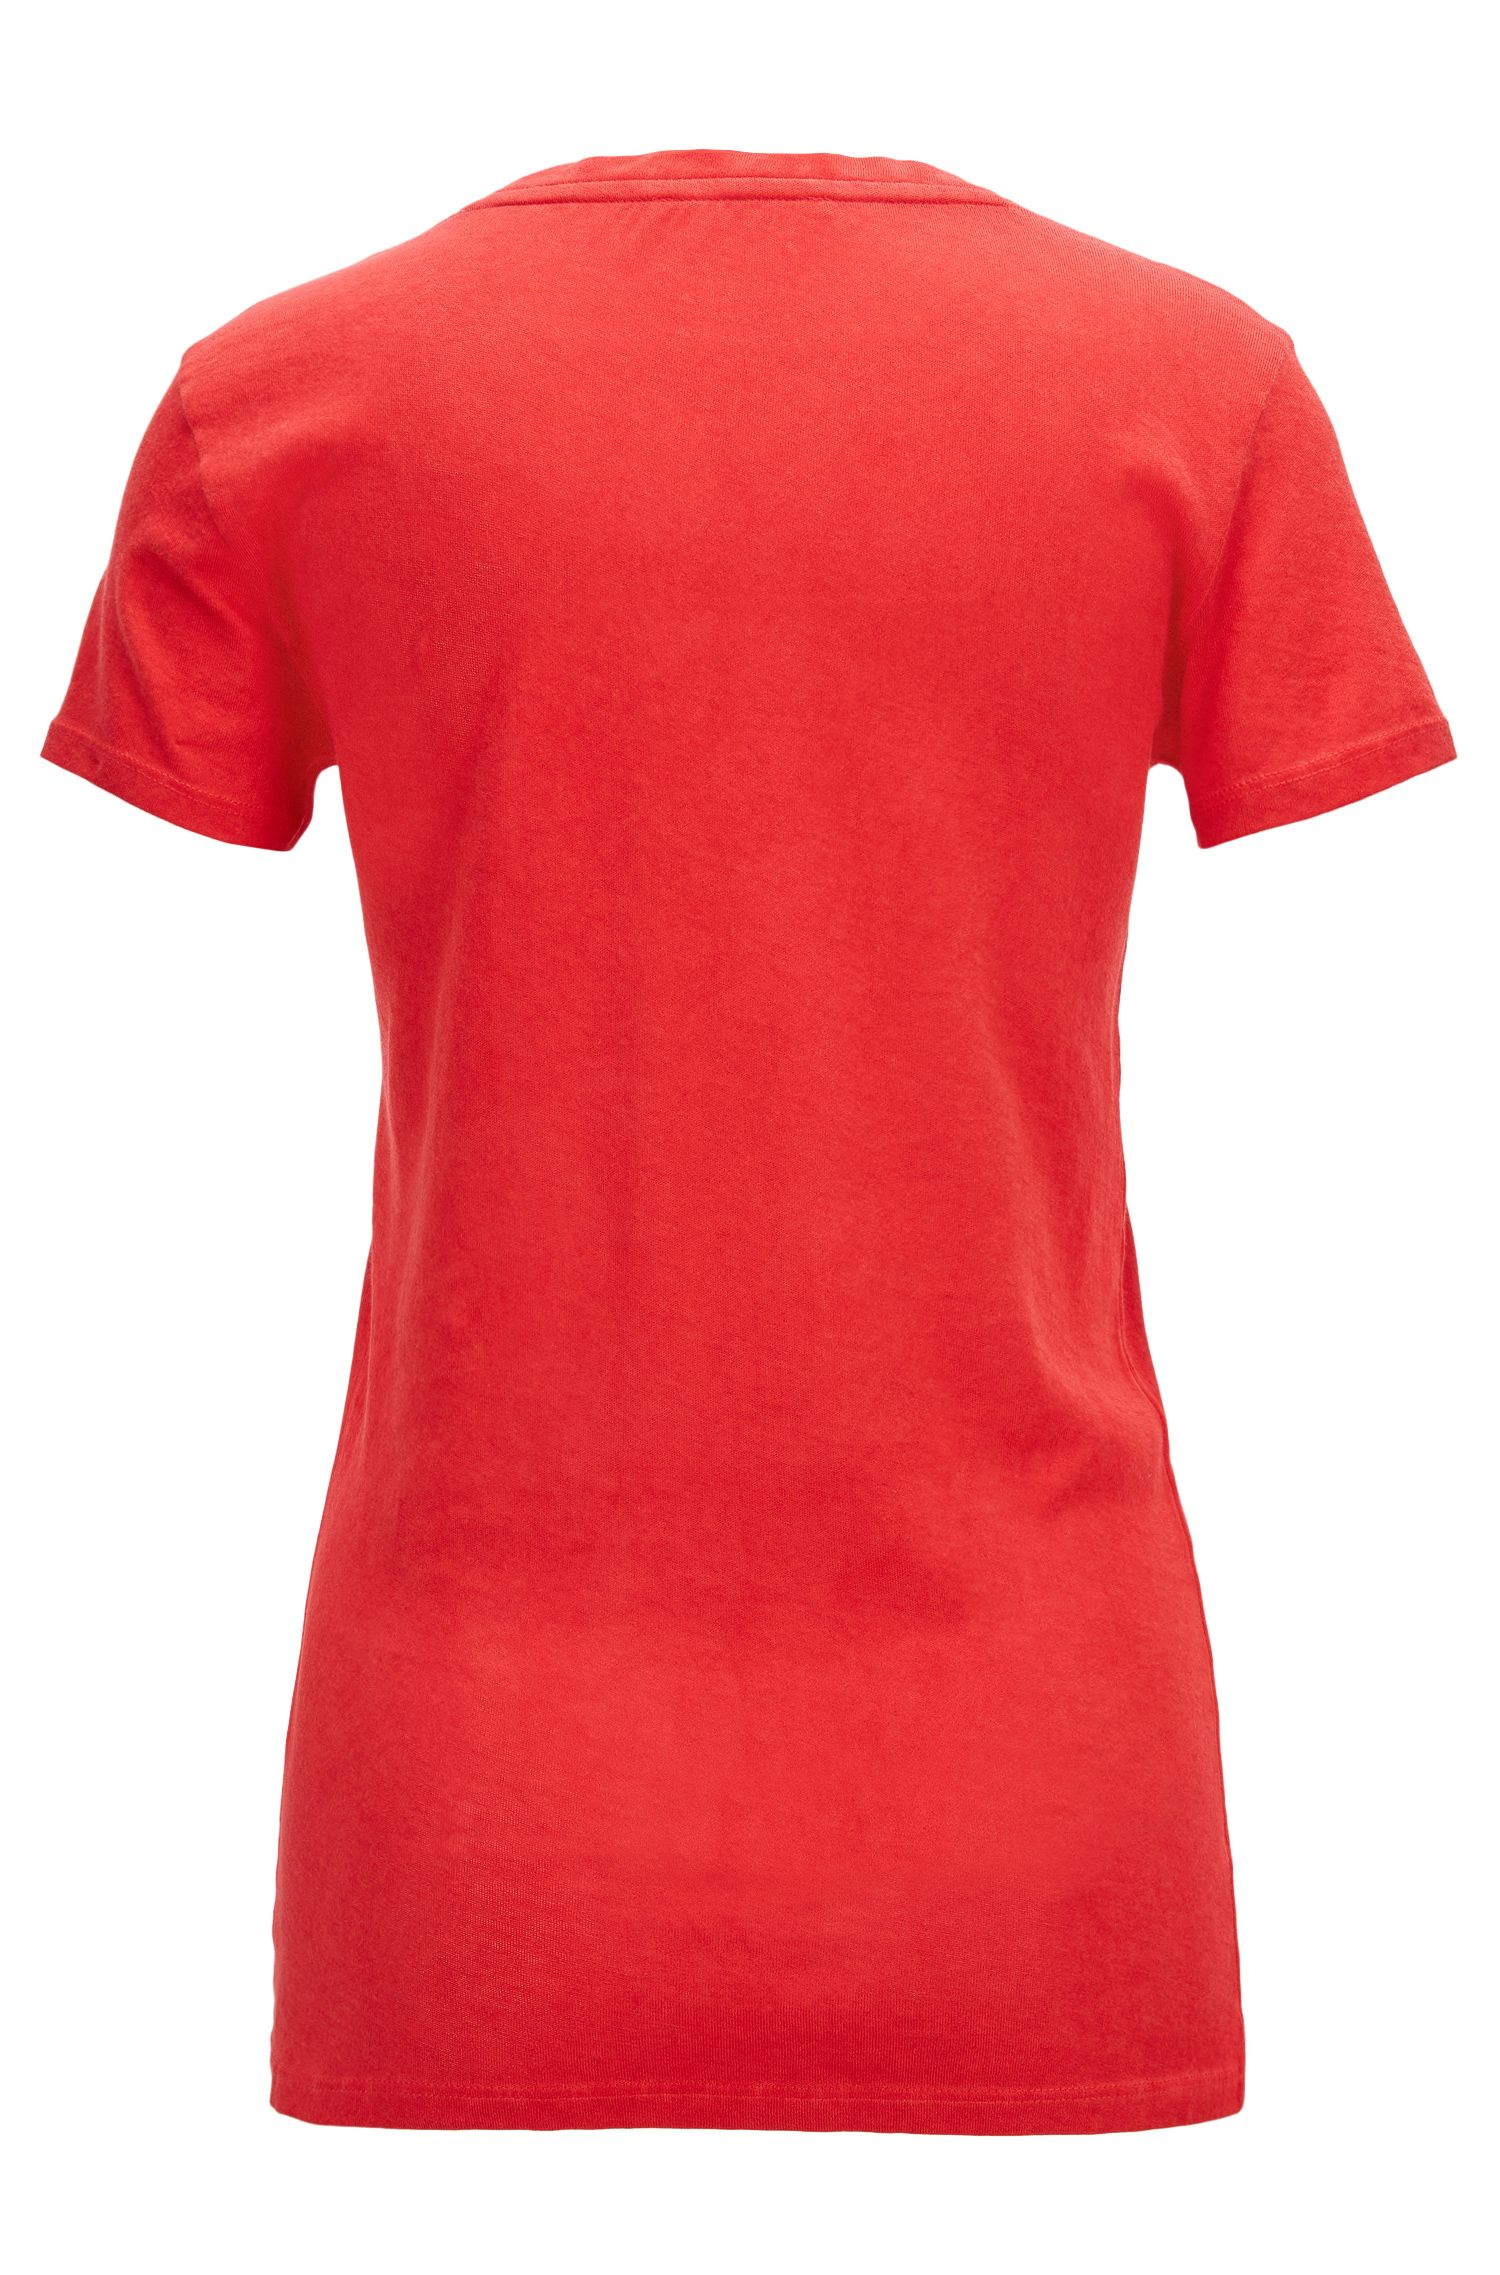 T-shirt slim fit in cotone tinto in capo